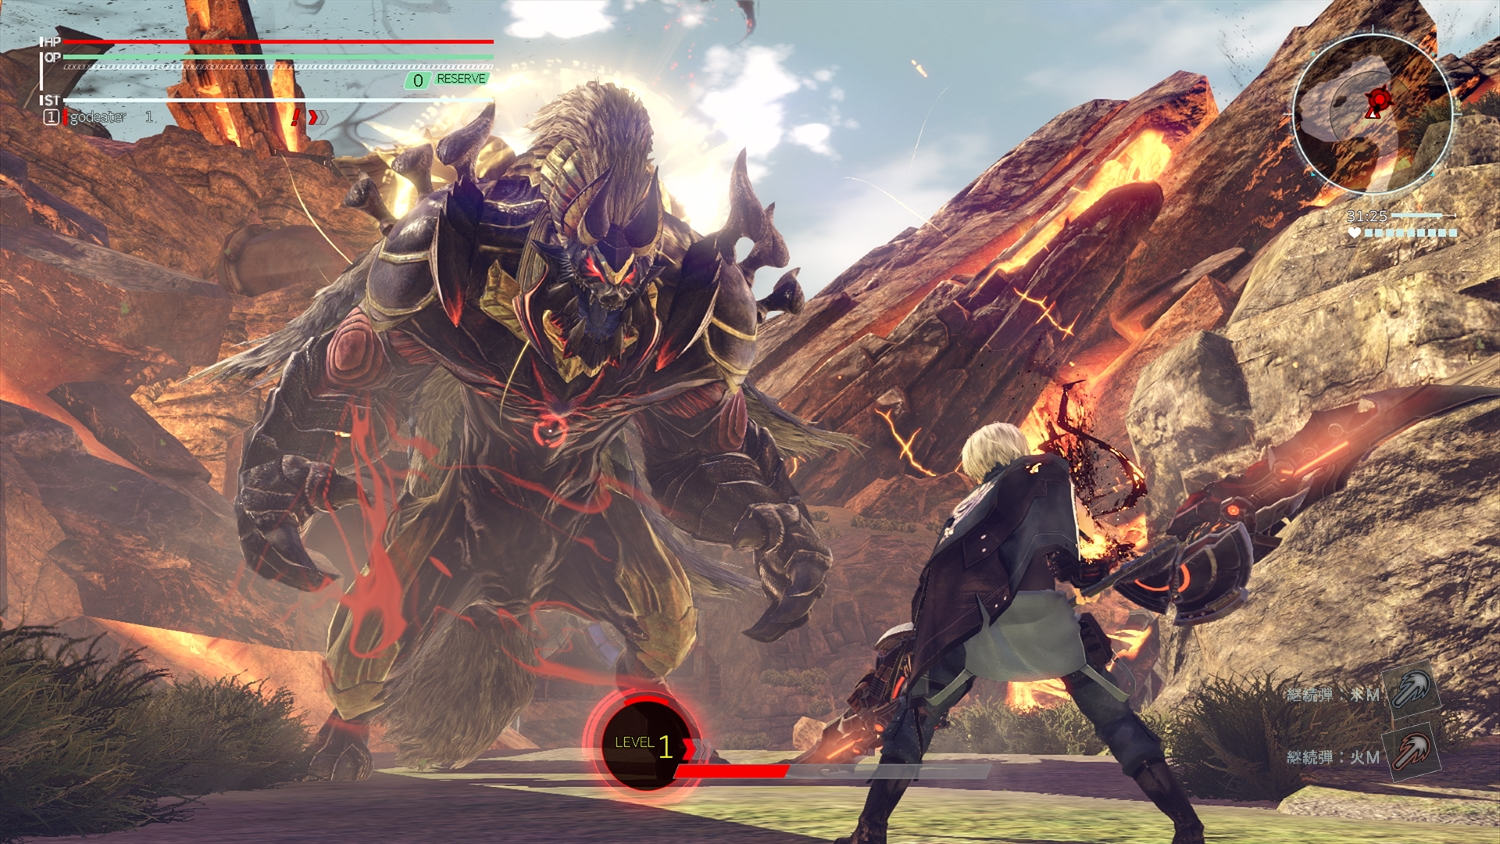 God Eater 3 (PS4) - imitation is the most sincere form of flattery